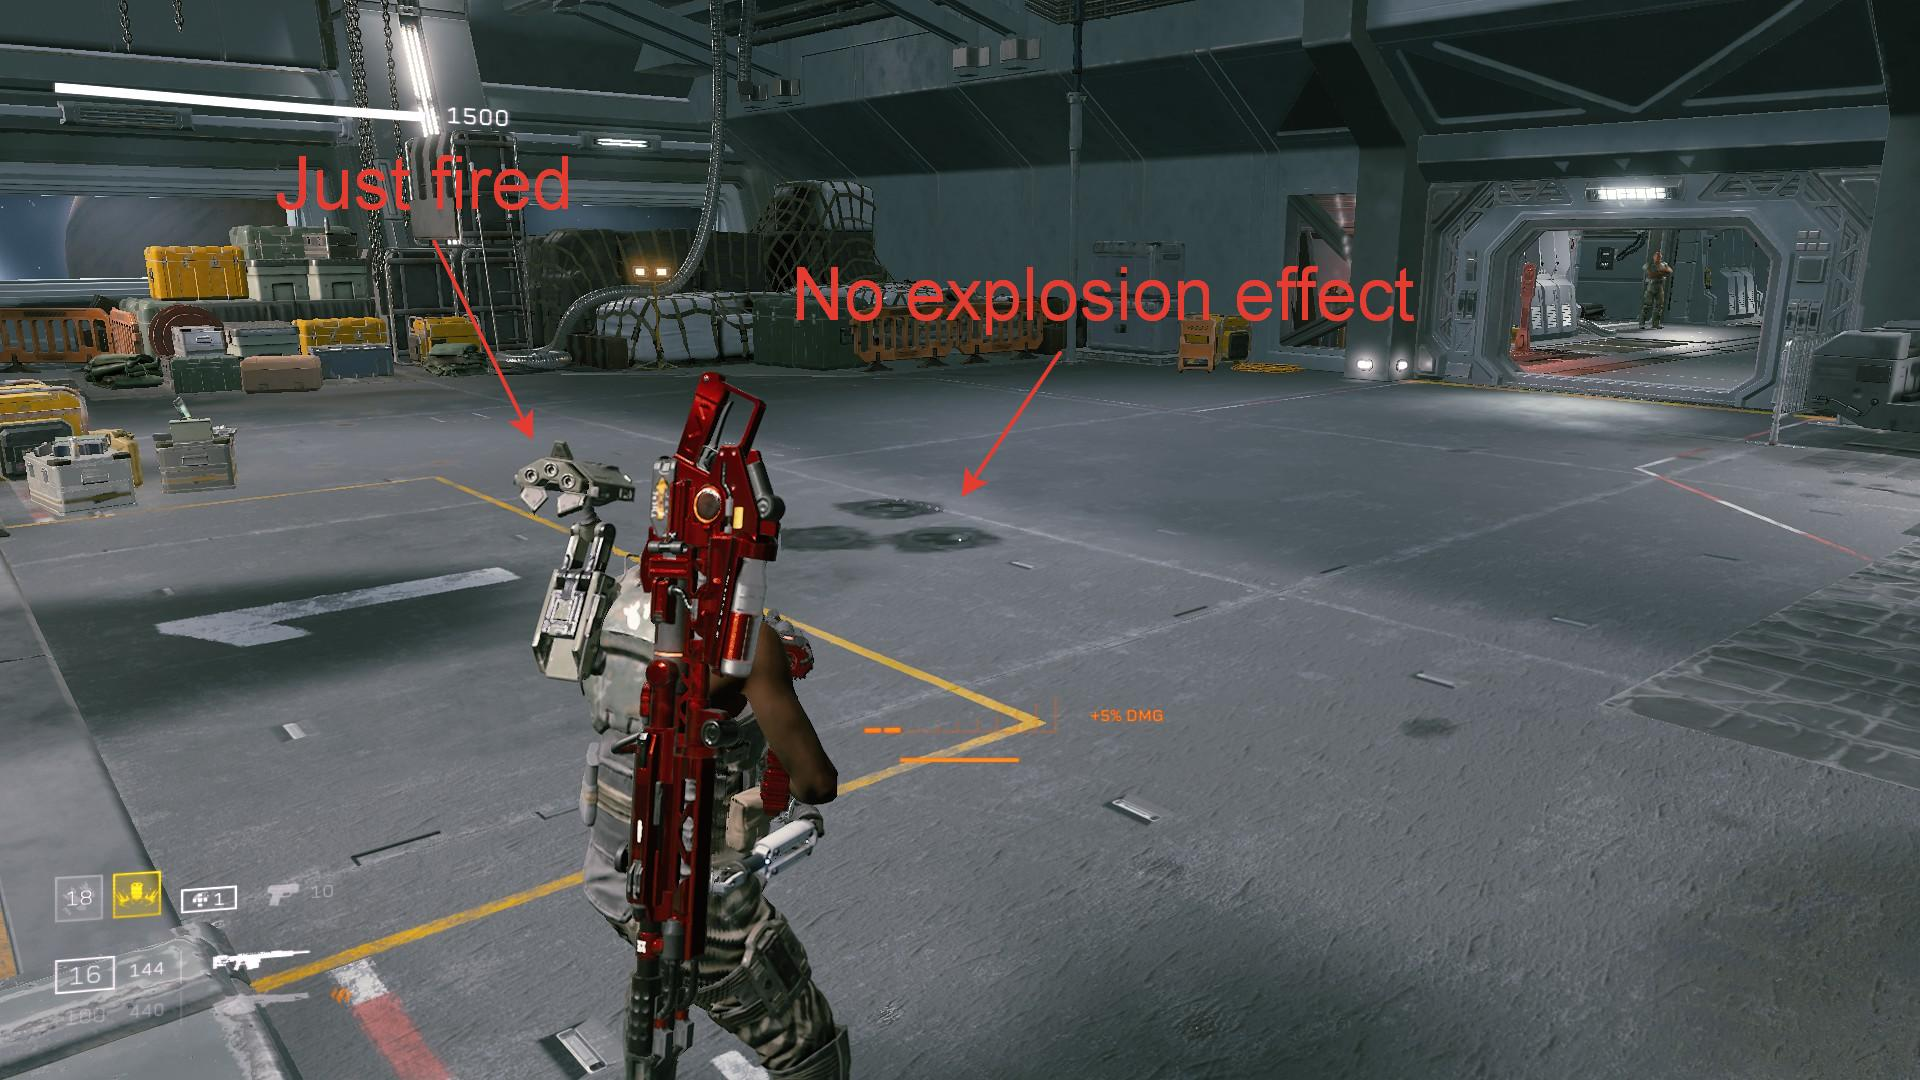 Aliens: Fireteam Elite - How to Remove Muzzle Flashes and Other Effects in Game - Why? - 0C0262B